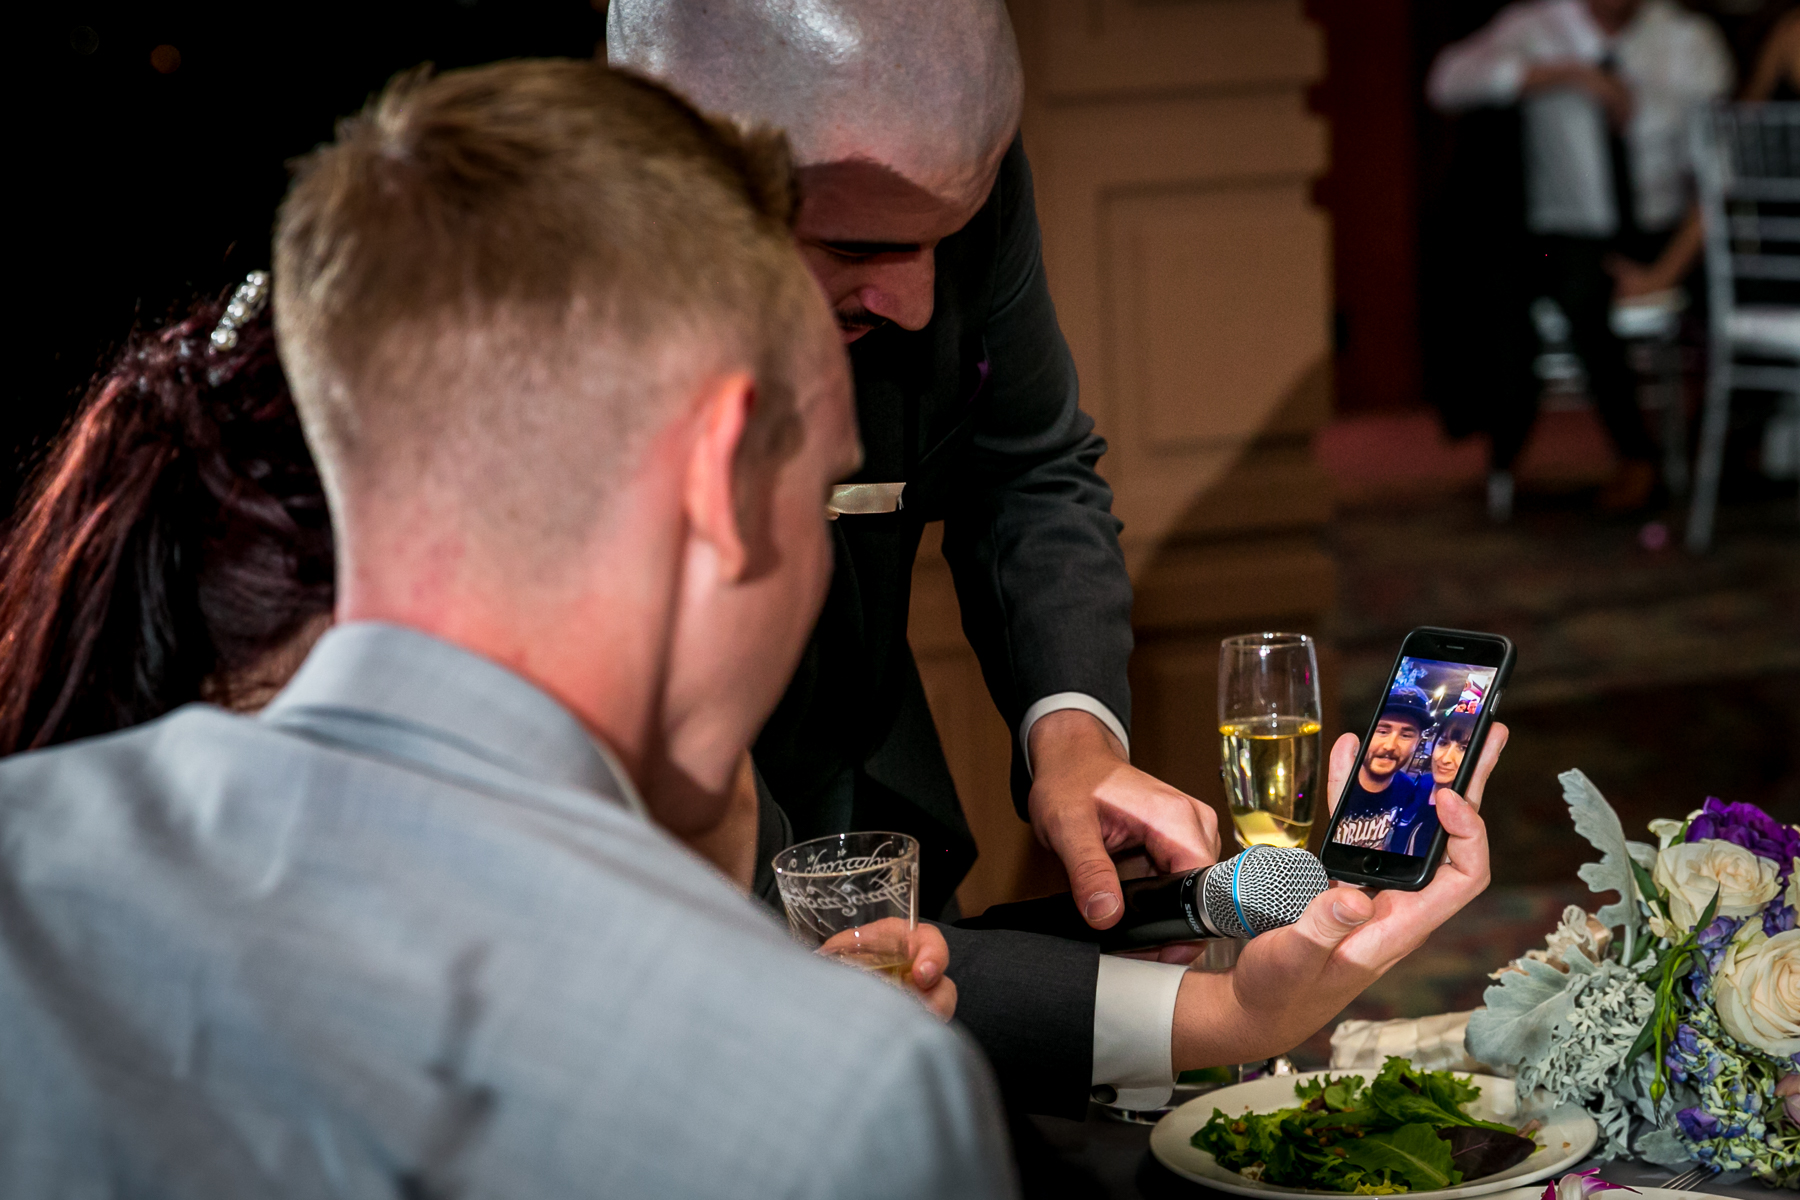 best friend facetime during wedding day at dove canyon courtyard wedding photos